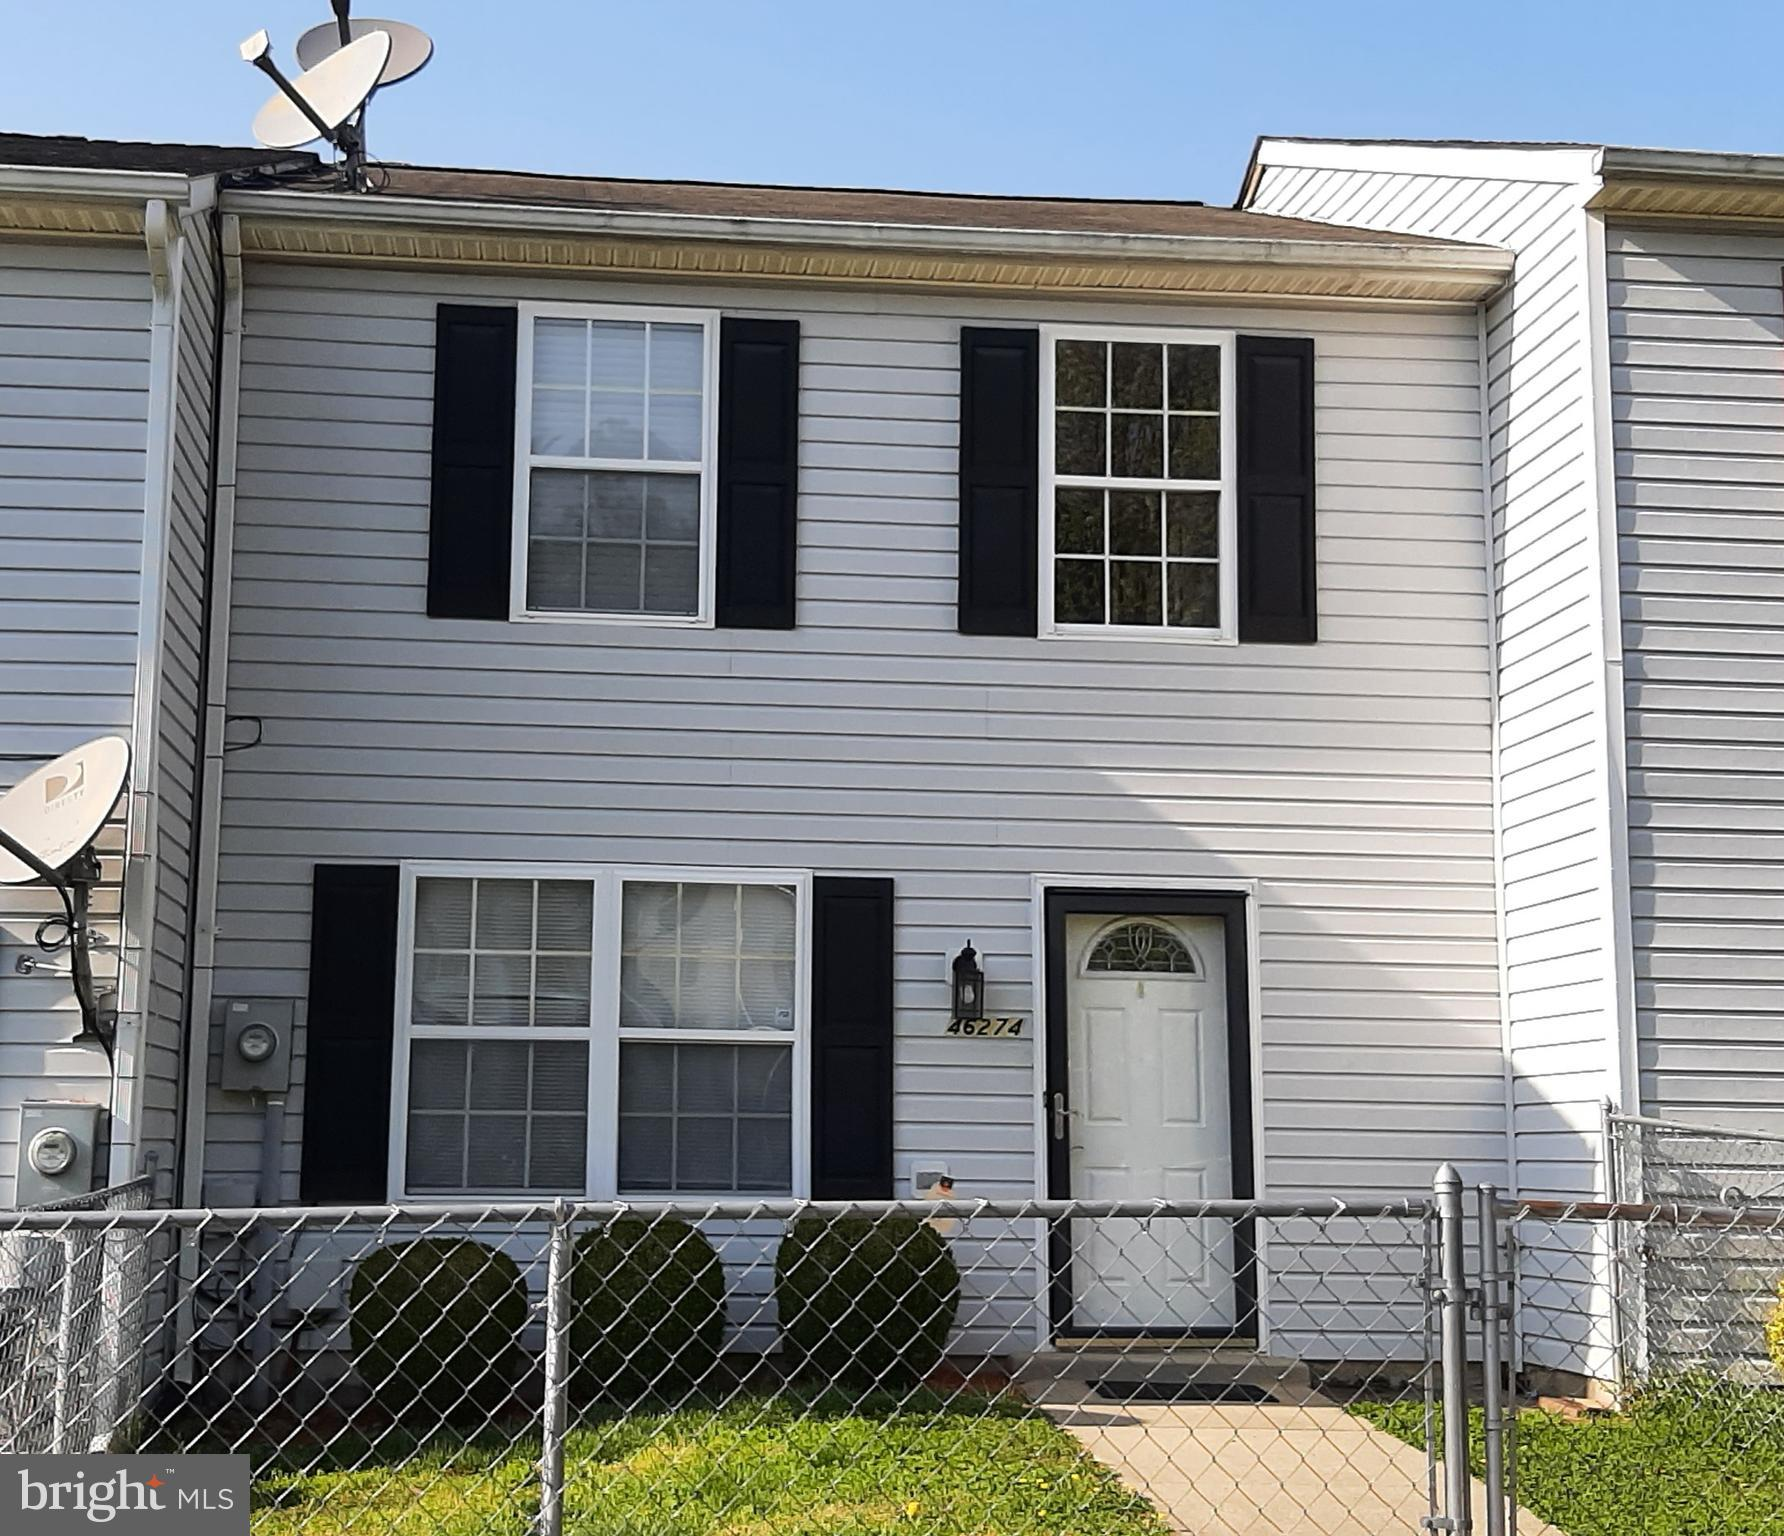 46274 MAKO WAY, LEXINGTON PARK, Maryland 20653, 3 Bedrooms Bedrooms, ,2 BathroomsBathrooms,Townhouse,For Sale,46274 MAKO WAY,MDSM175566